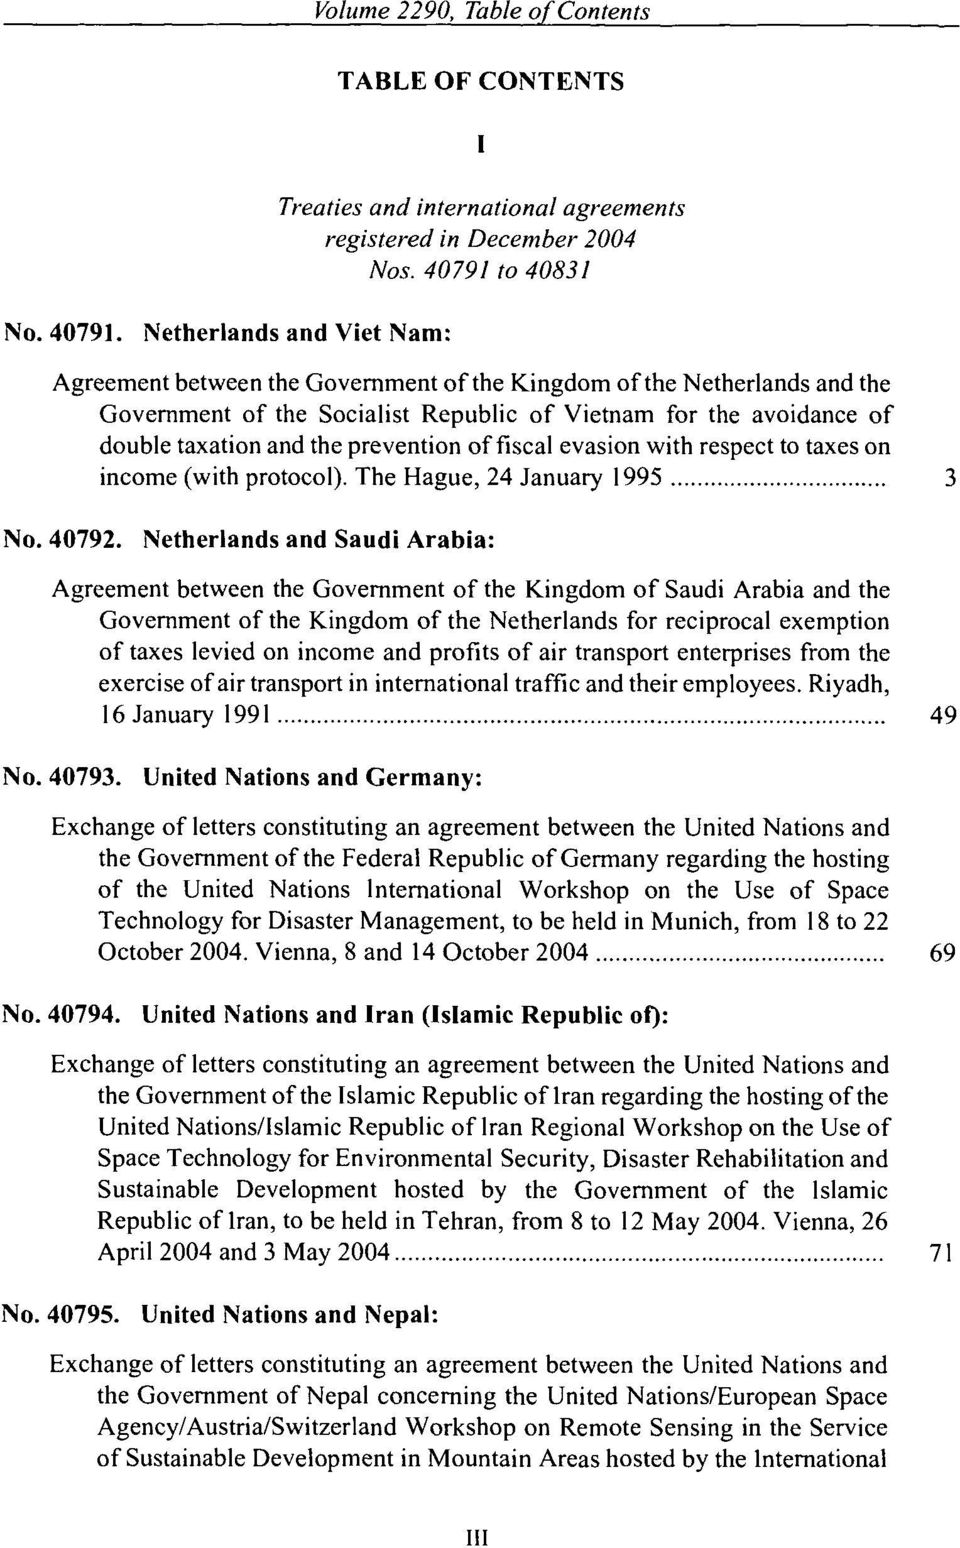 Netherlands and Viet Nam: Agreement between the Government of the Kingdom of the Netherlands and the Government of the Socialist Republic of Vietnam for the avoidance of double taxation and the